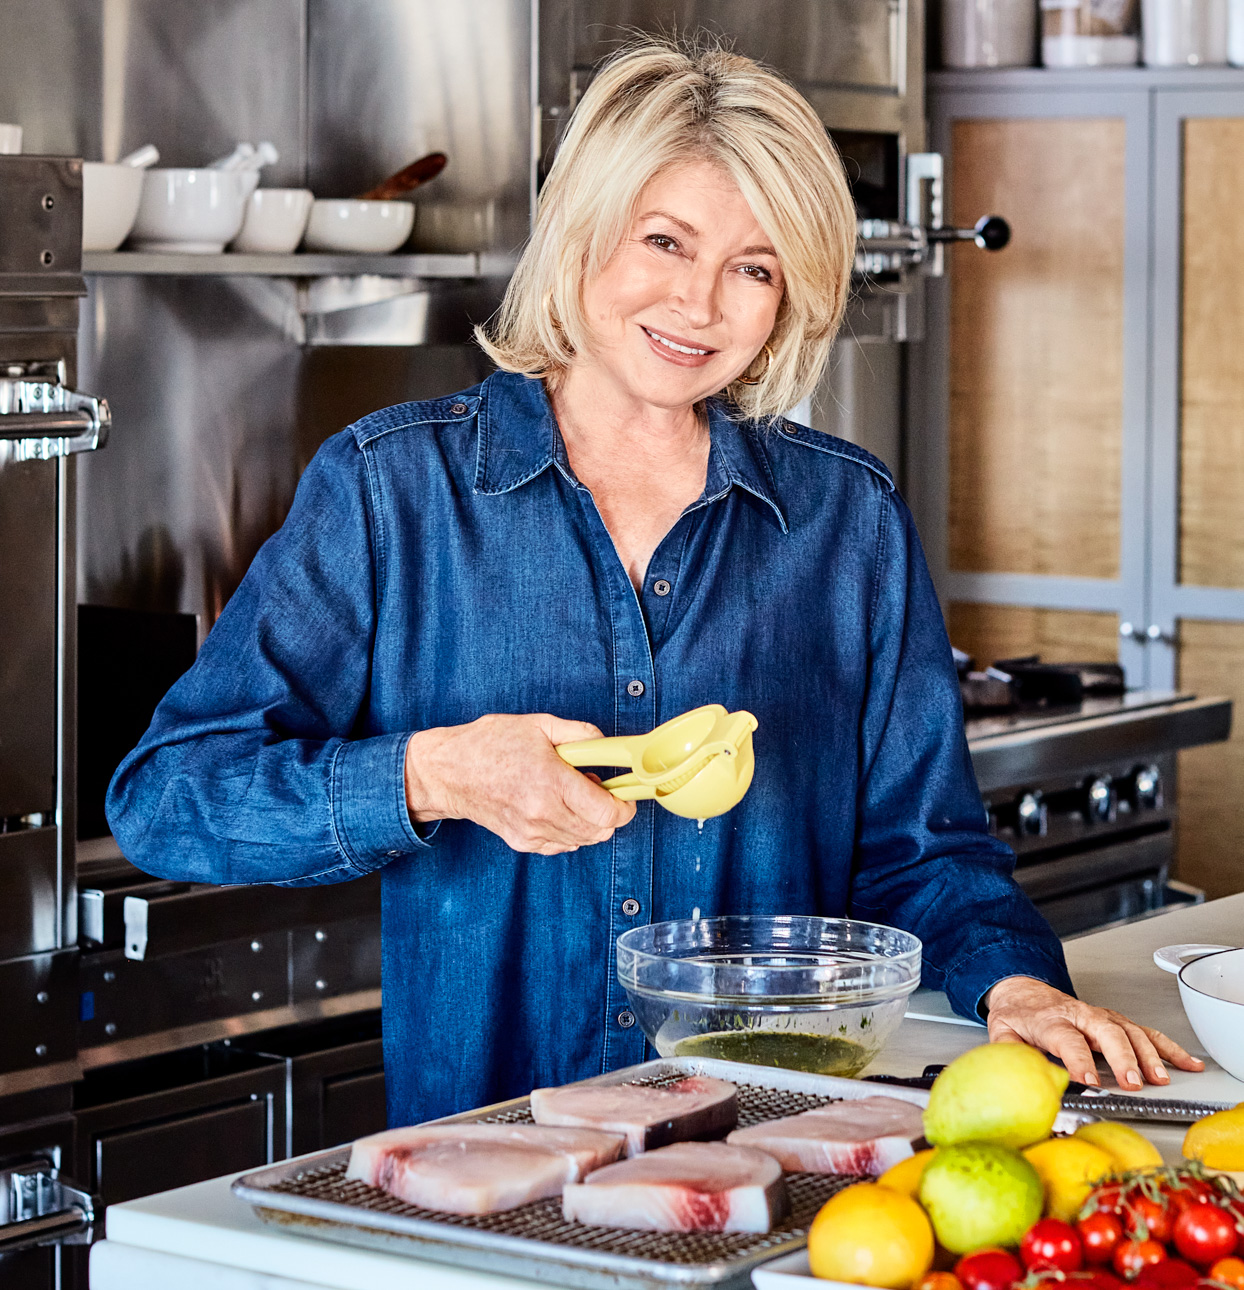 Martha Stewart juicing in kitchen